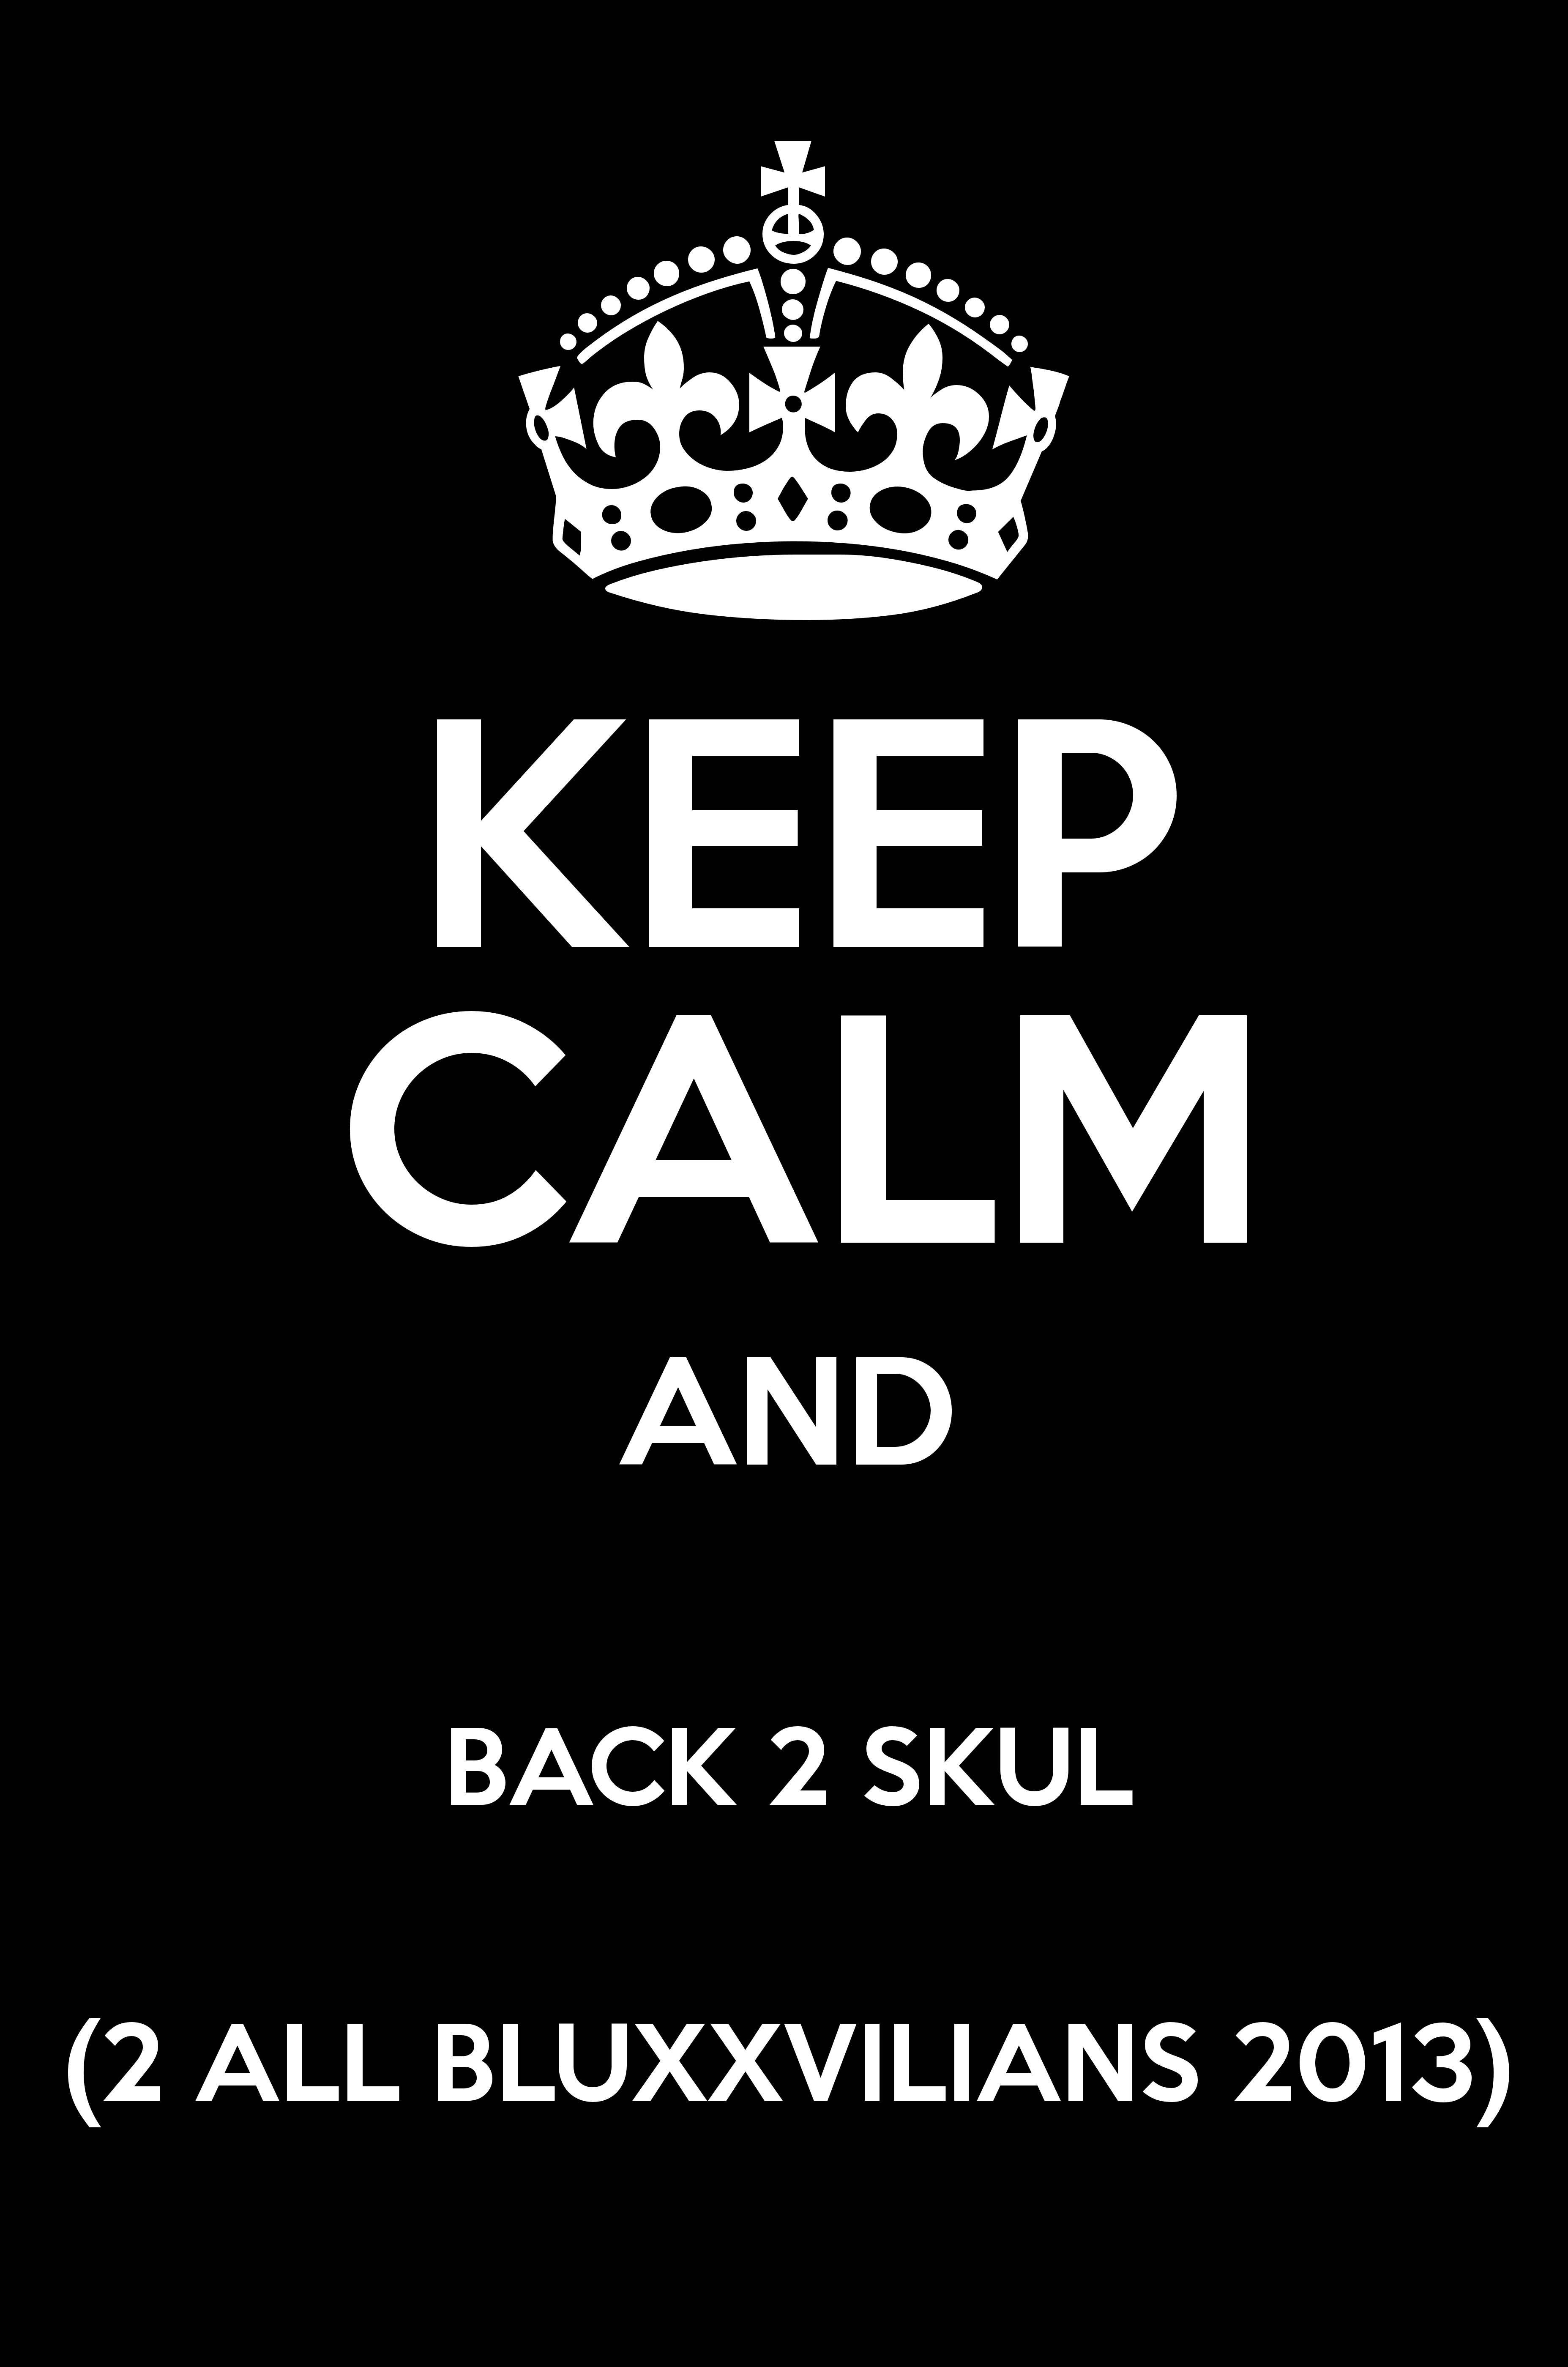 KEEP CALM AND BACK 2 SKUL ALL BLUXXVILIANS 2013 Poster